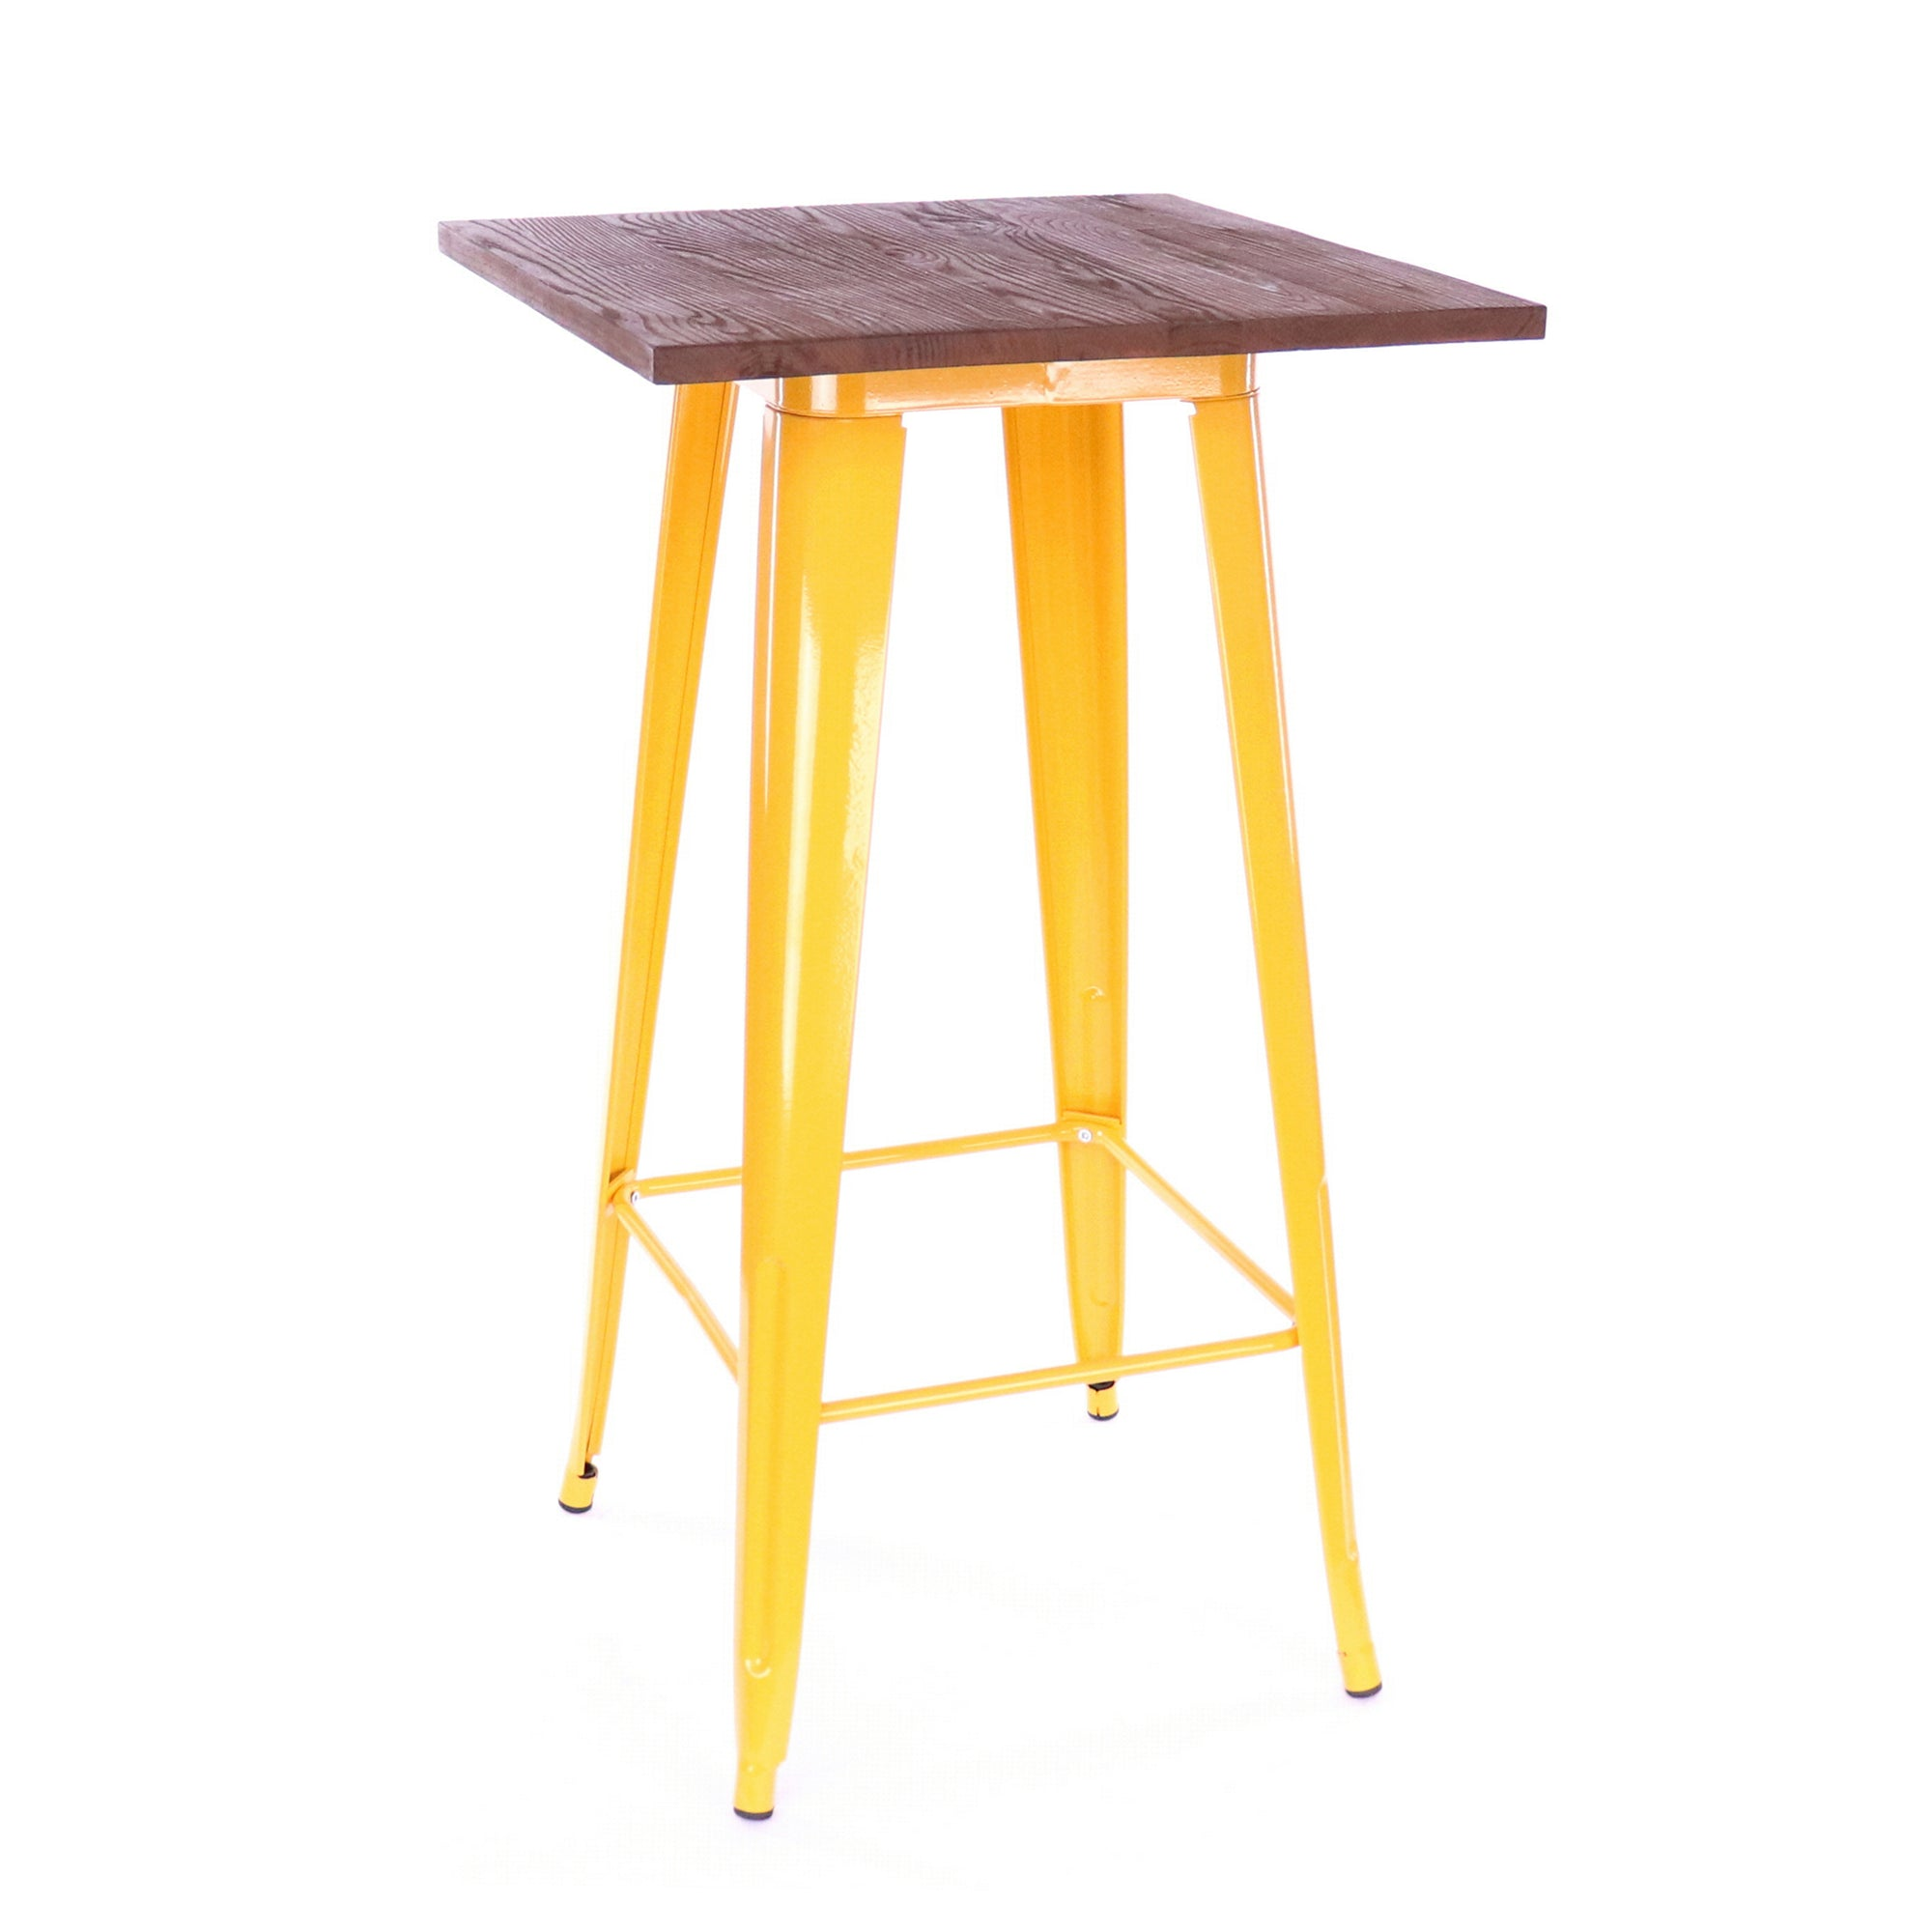 DesignLabMN-Dreux Elm Wood Steel Bar Table-Bar Tables-MODTEMPO